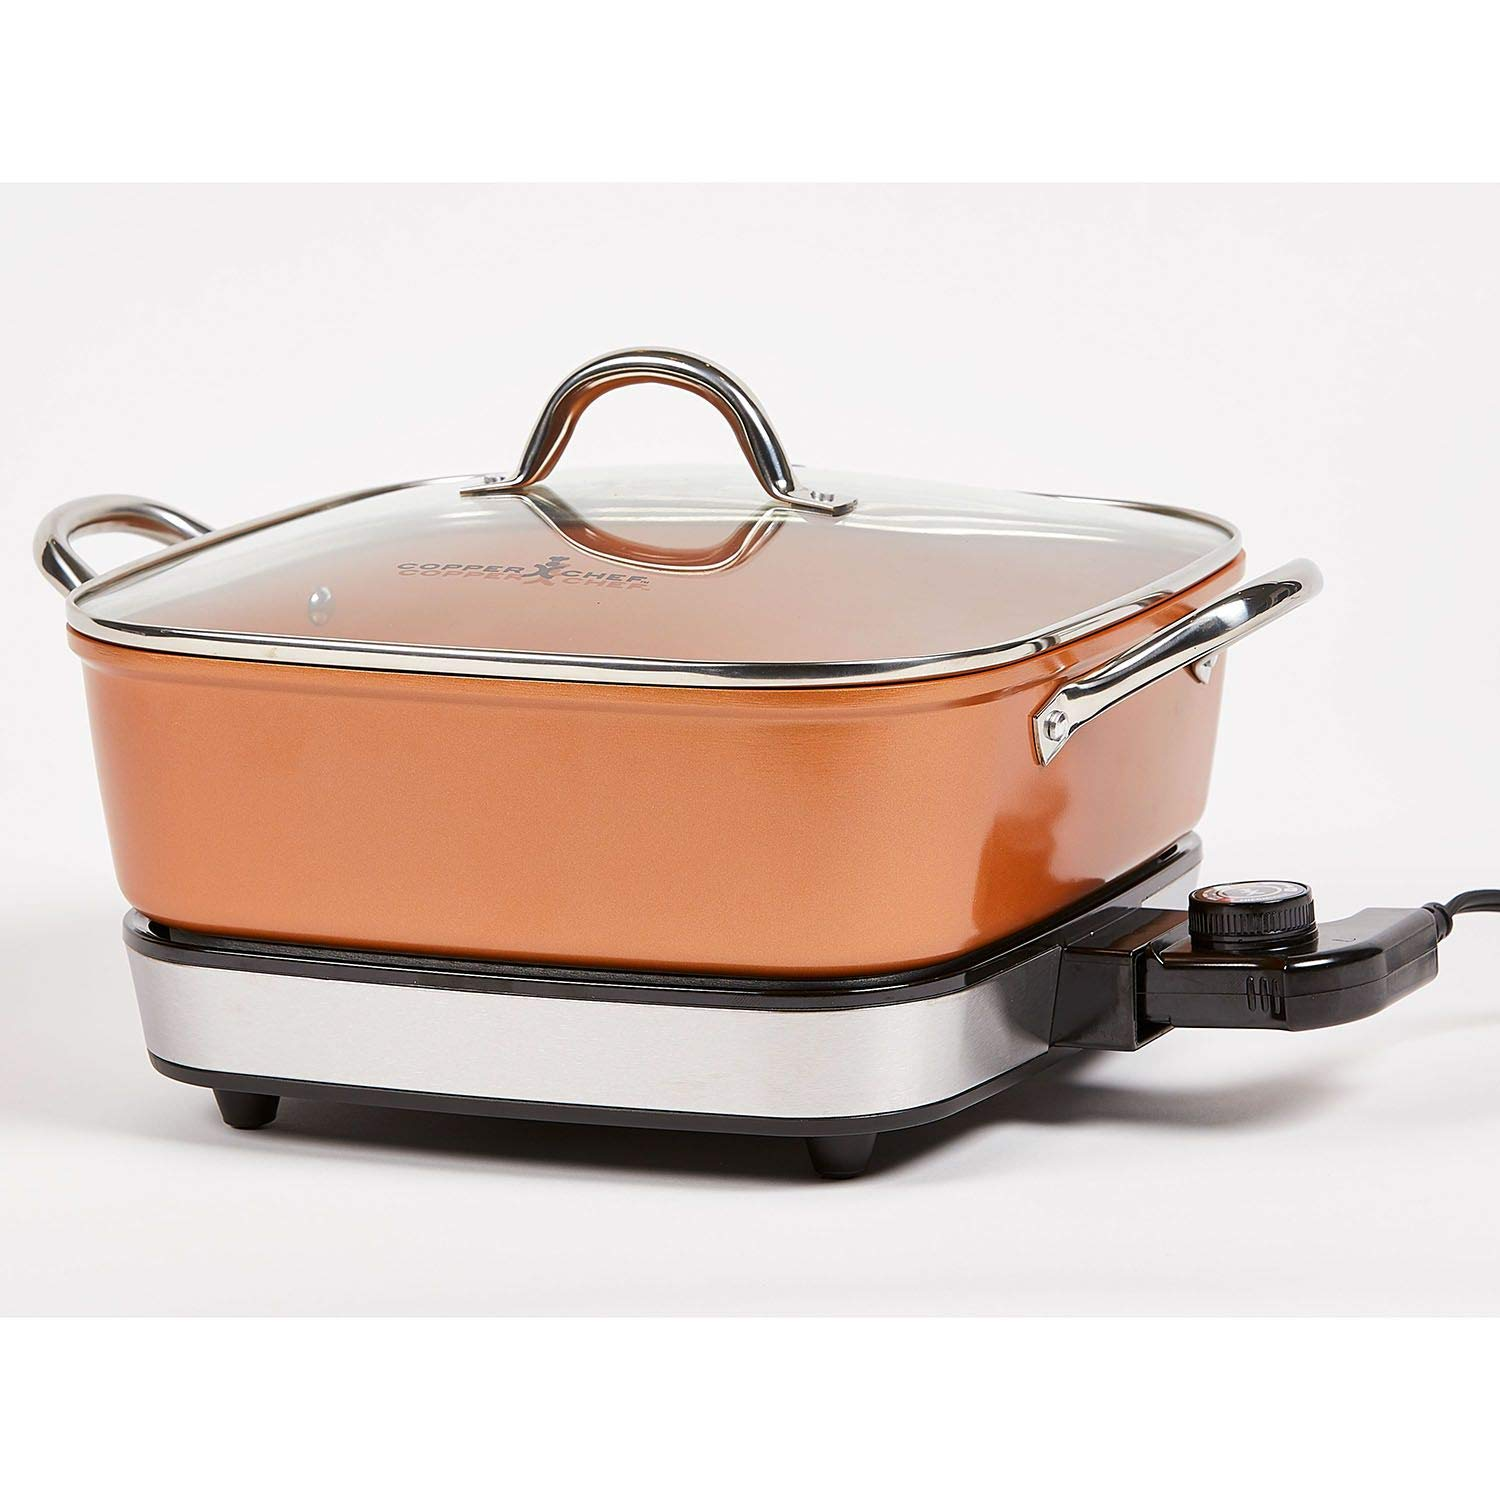 Copper Chef 12 Inch Electric Skillet – Non-Stick Skillet Pan With Glass Lid – Buffet Server & Deep Ceramic Frying Pan For Cooking – Recipe Book Included | Rustic Copper Pan Color